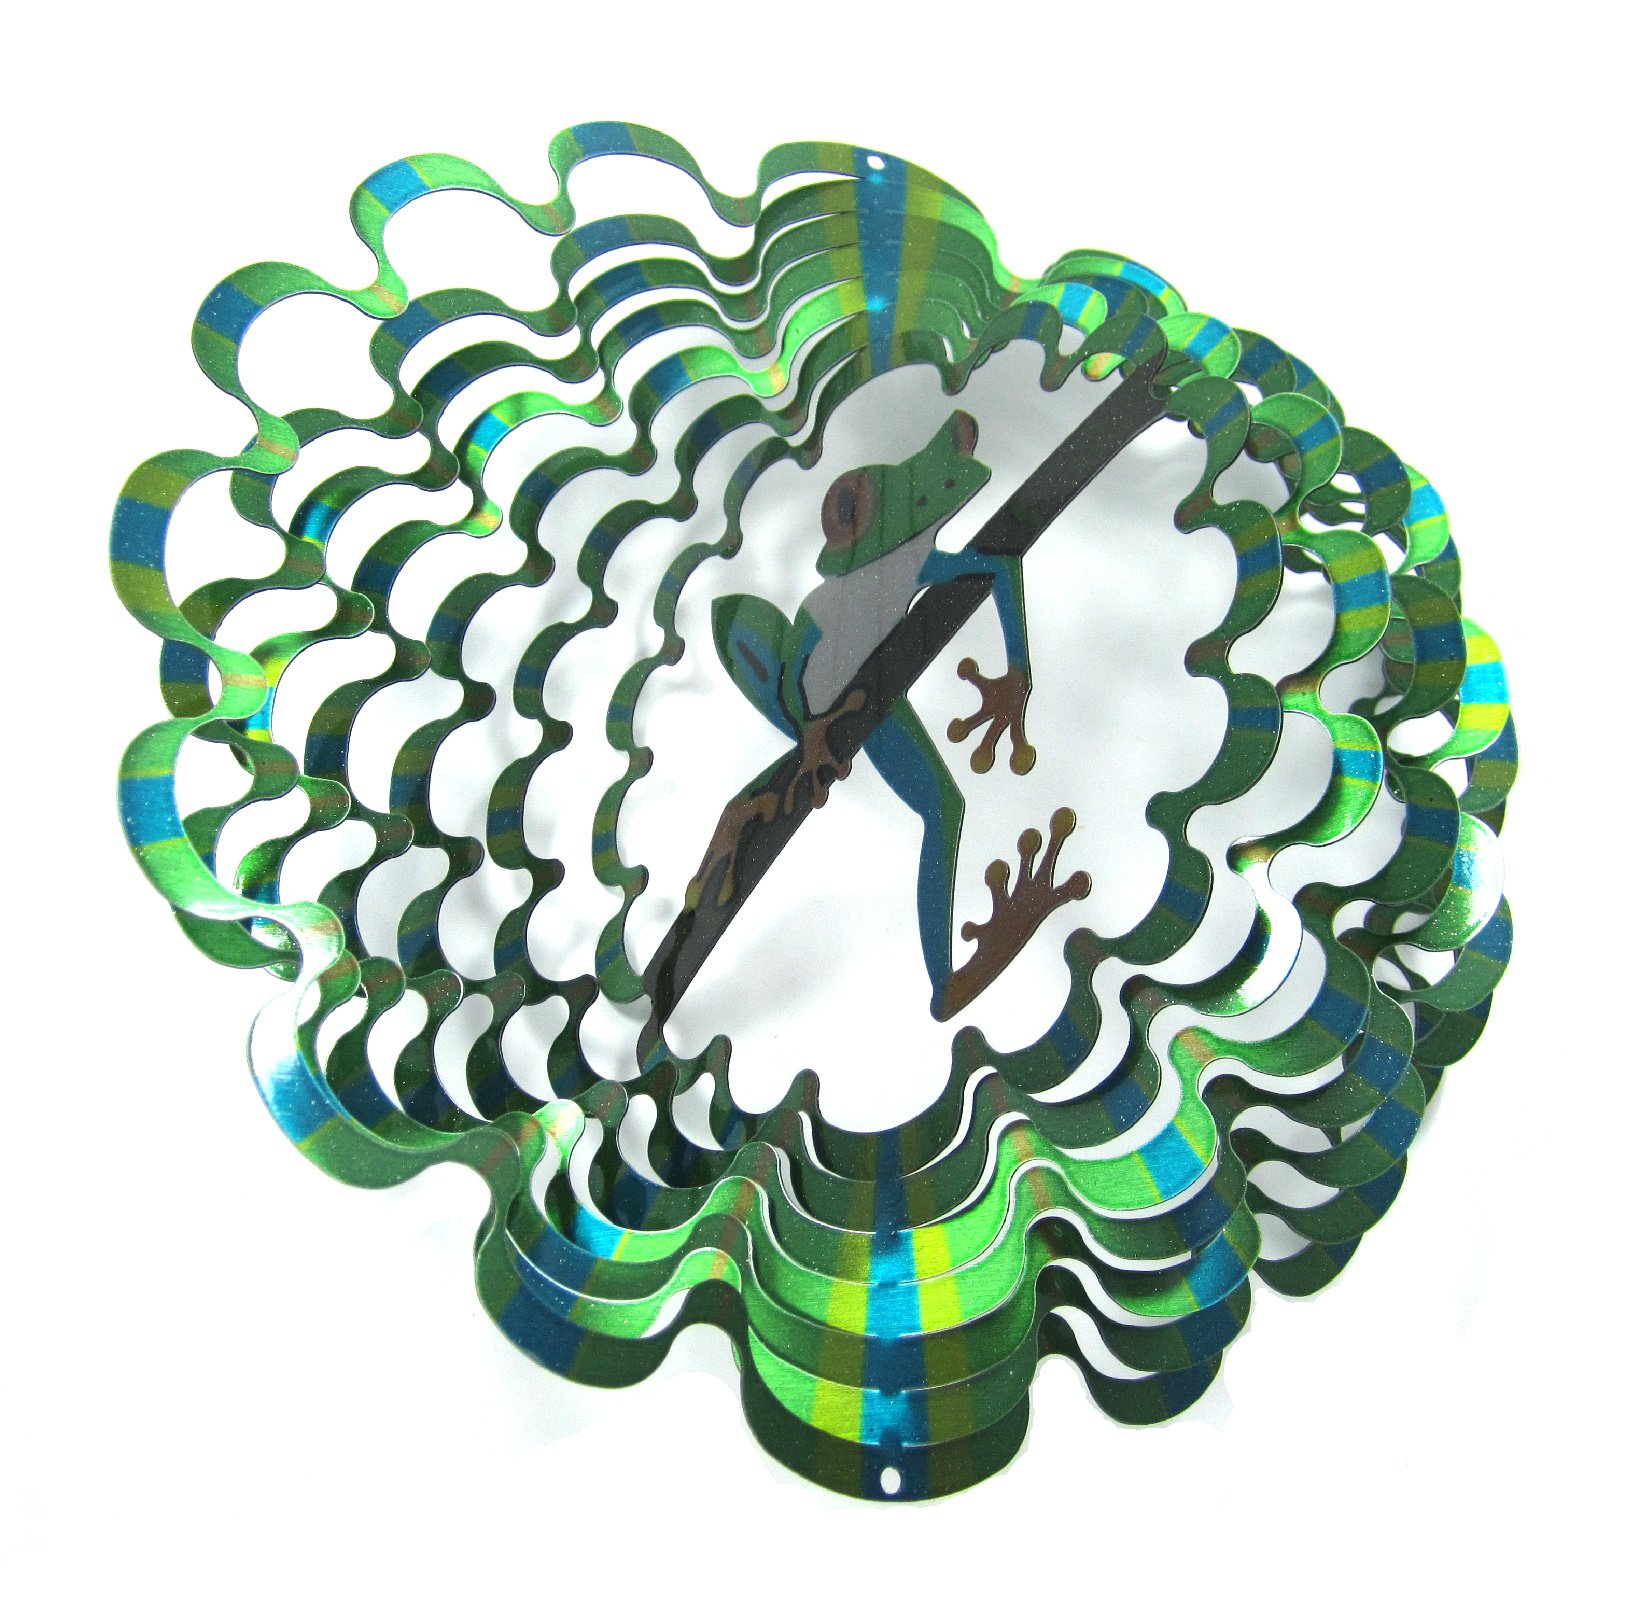 WorldaWhirl Whirligig 3D Wind Spinner Hand Painted Stainless Steel Twister Frog (12'' Inch, Multi Color)